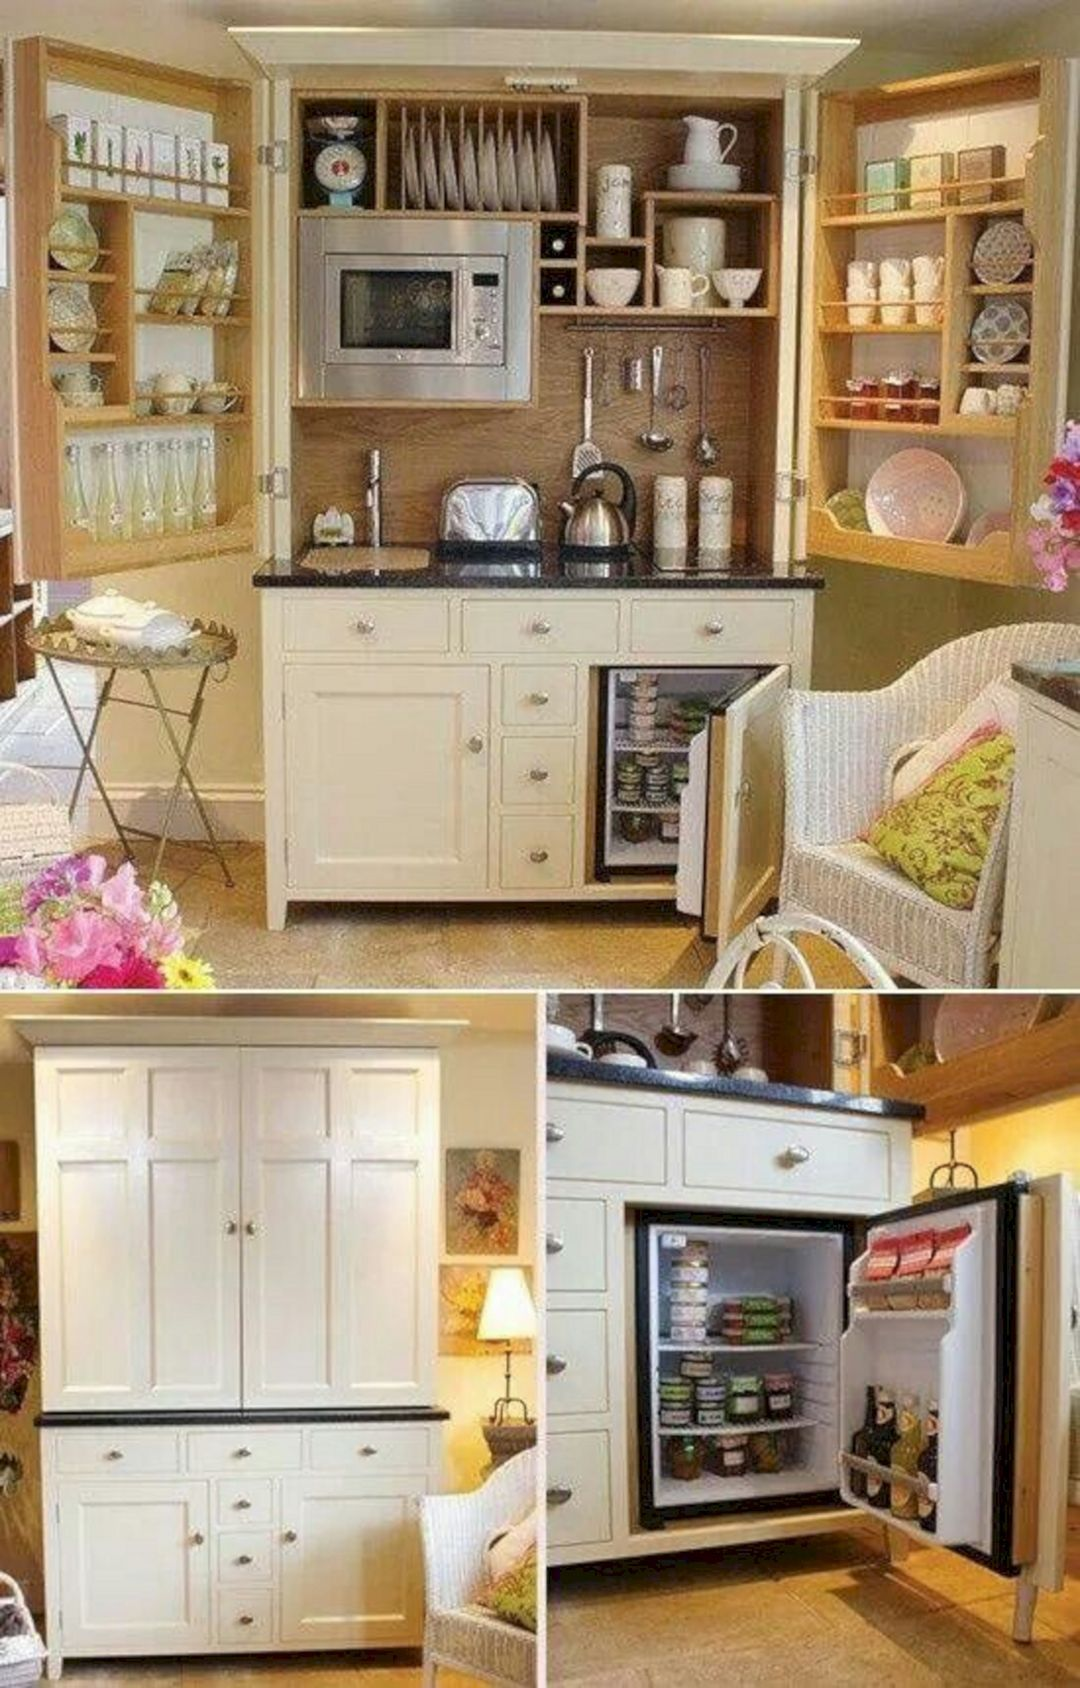 Awesome Tiny Kitchen Design For Your Beautiful Tiny House: 65+ Best Design Ideas #tinykitchens